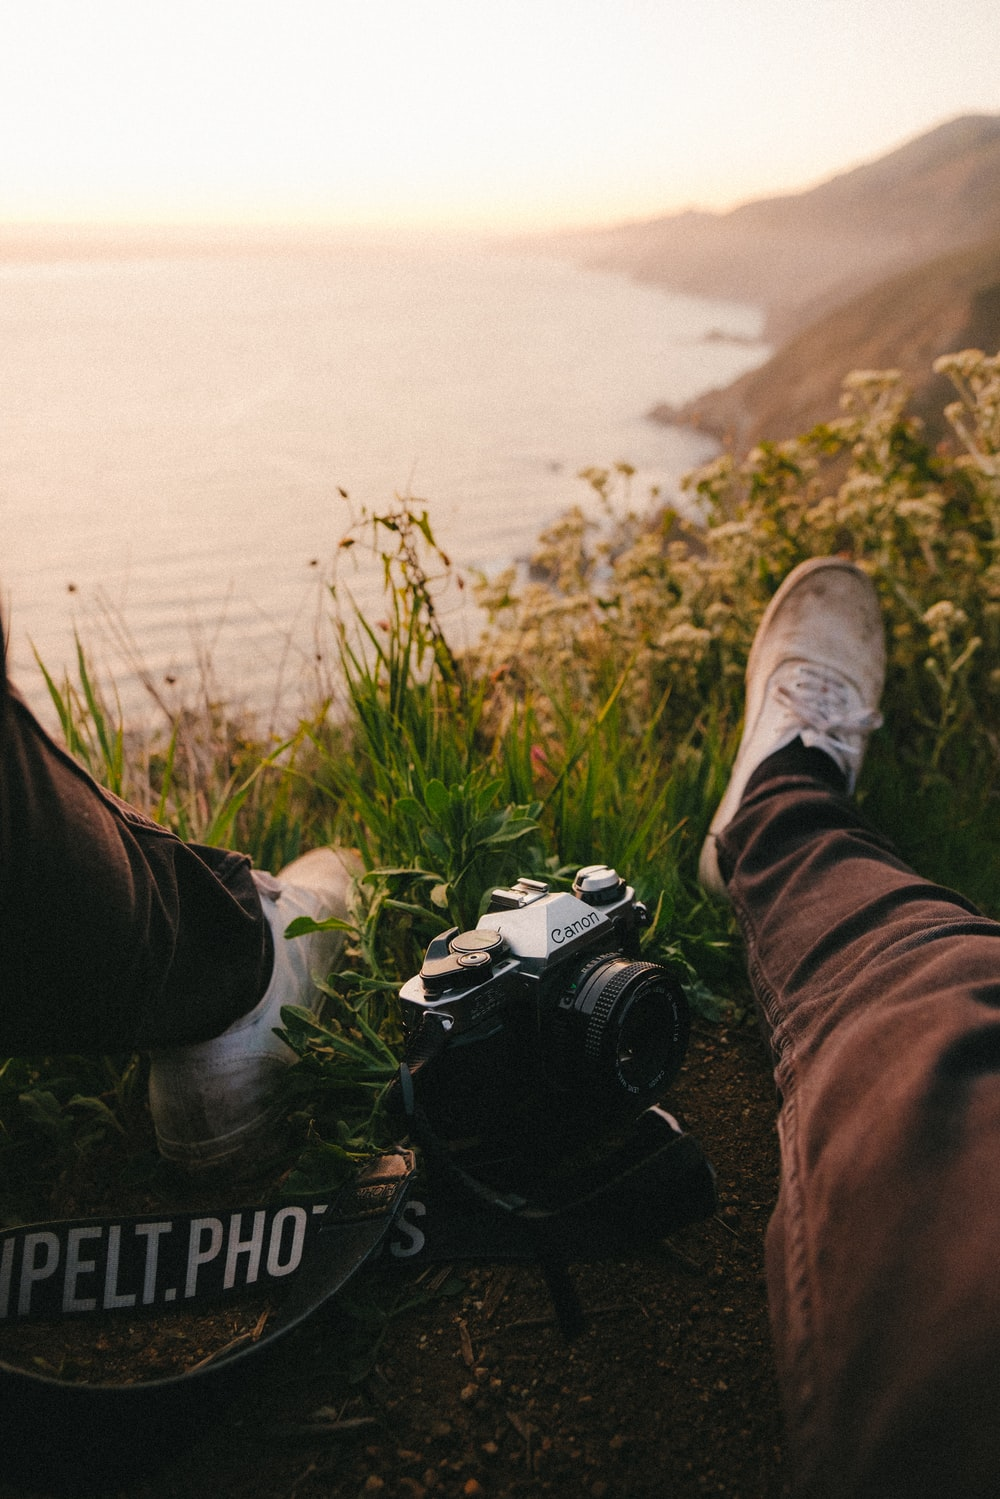 person in black pants and white sneakers sitting on grass field with black and white dslr